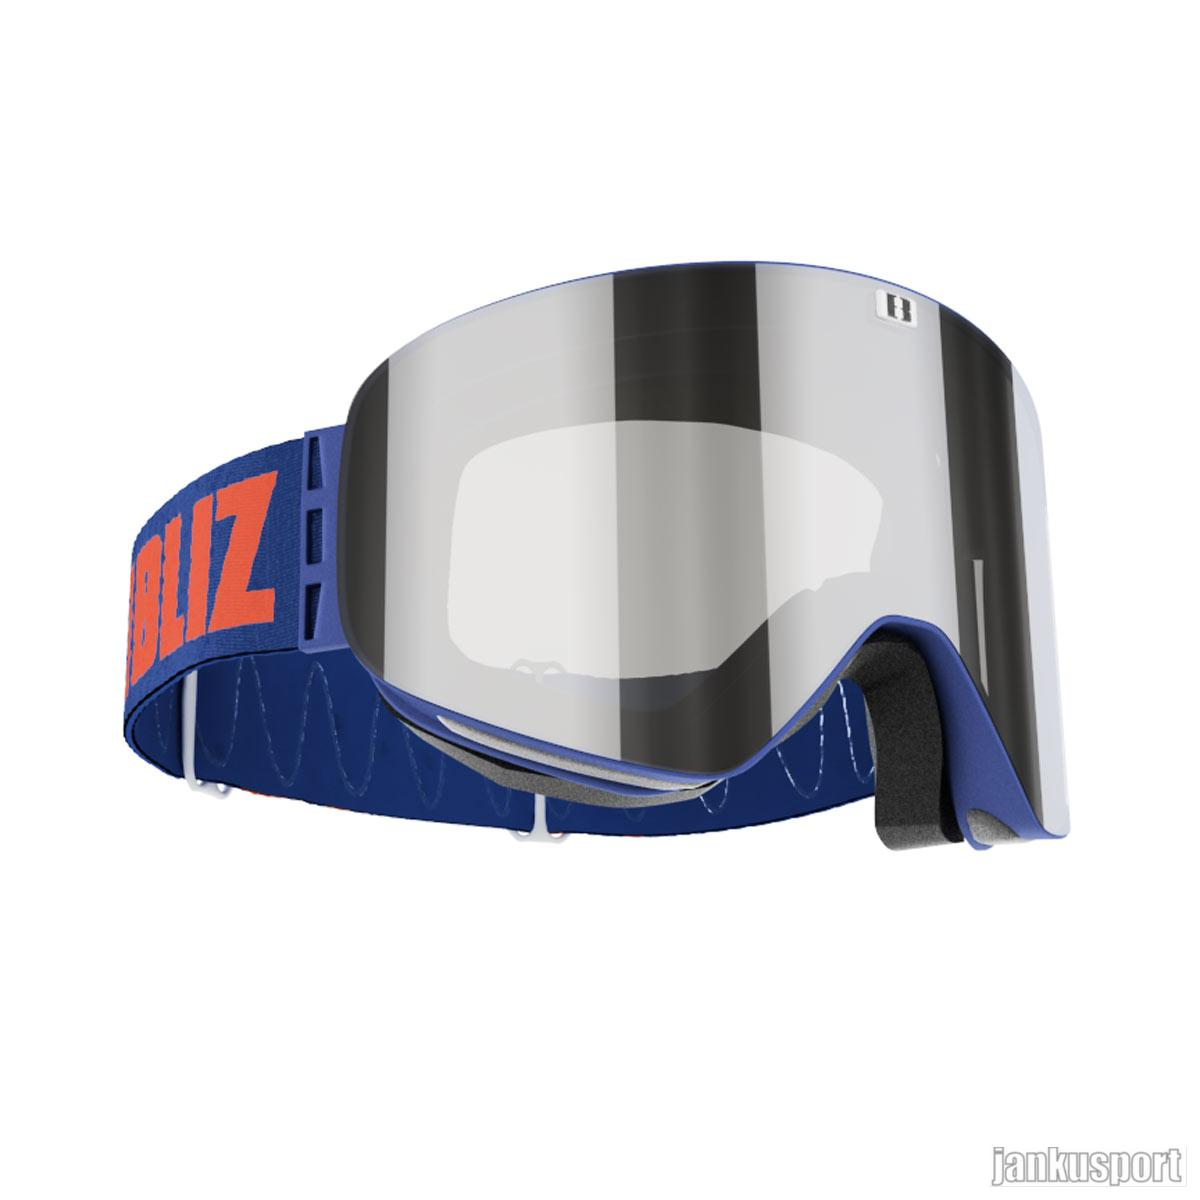 Bliz – Flow mark 14 Blue, Brown w Silver Mirror